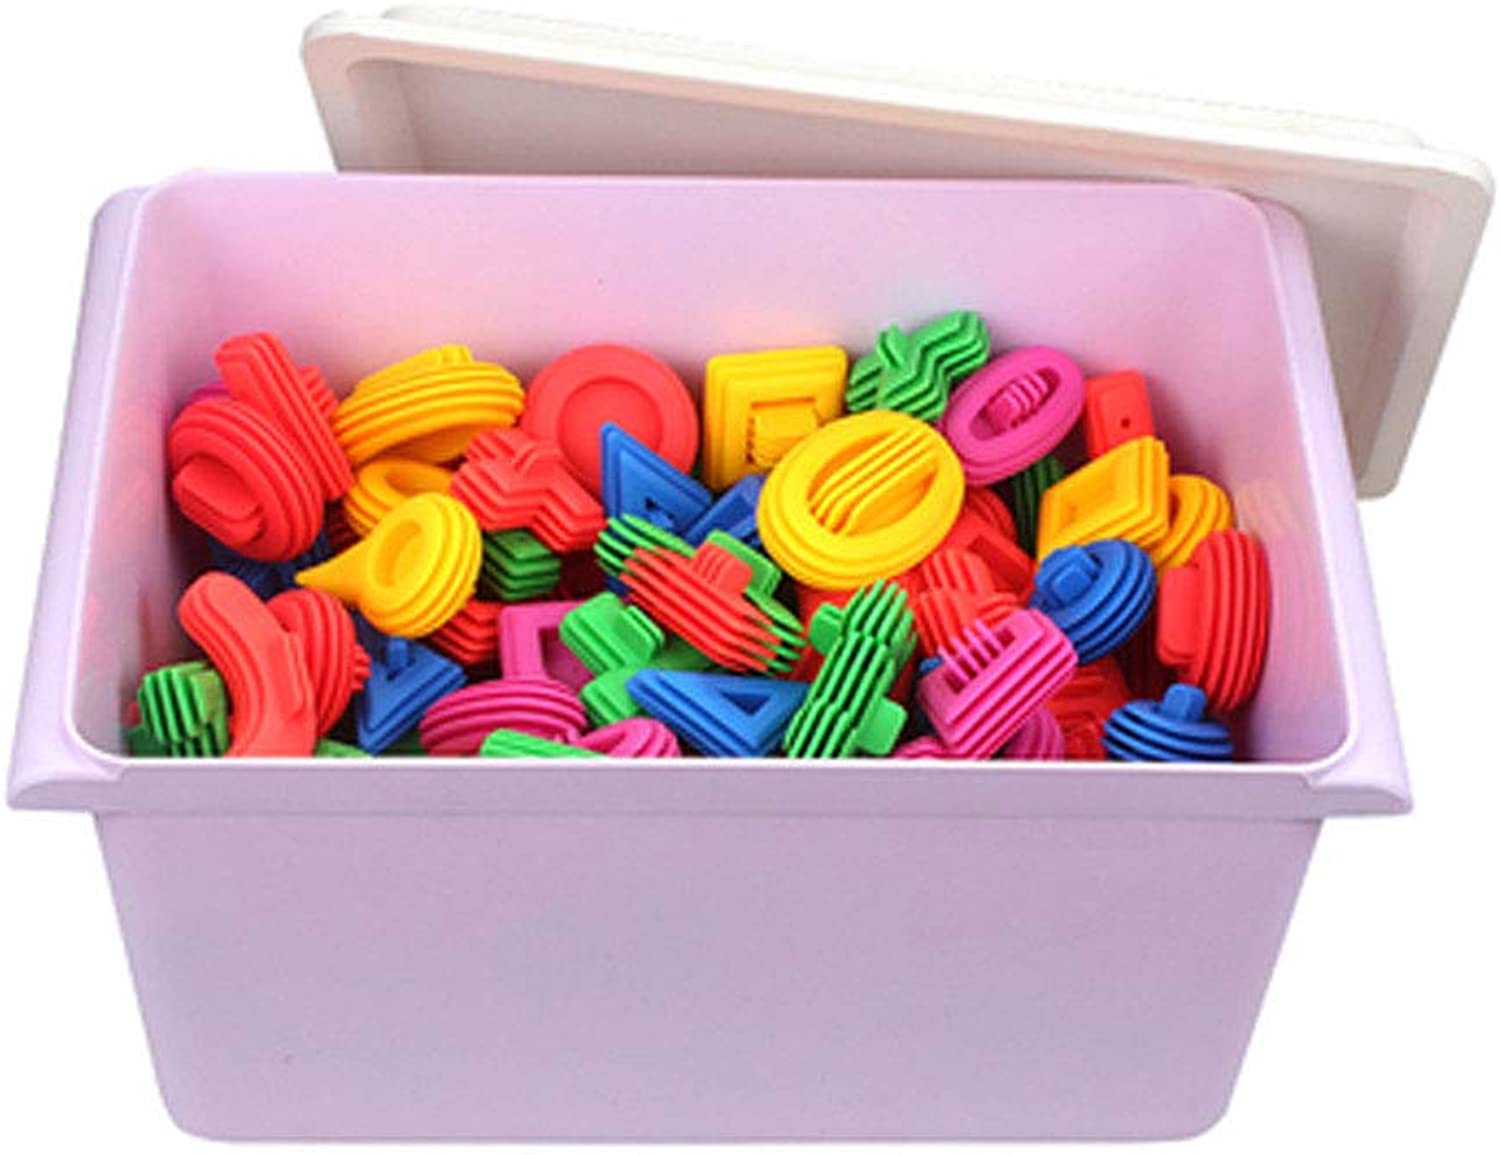 Hai Yan Boutique Toys Toys - 2-3-4-6 Years Old Early Education Building Blocks Educational Toys color Soft Body Thickening Building Blocks Plastic Spell Insert Assembling Toys Baby Intellectual Toys